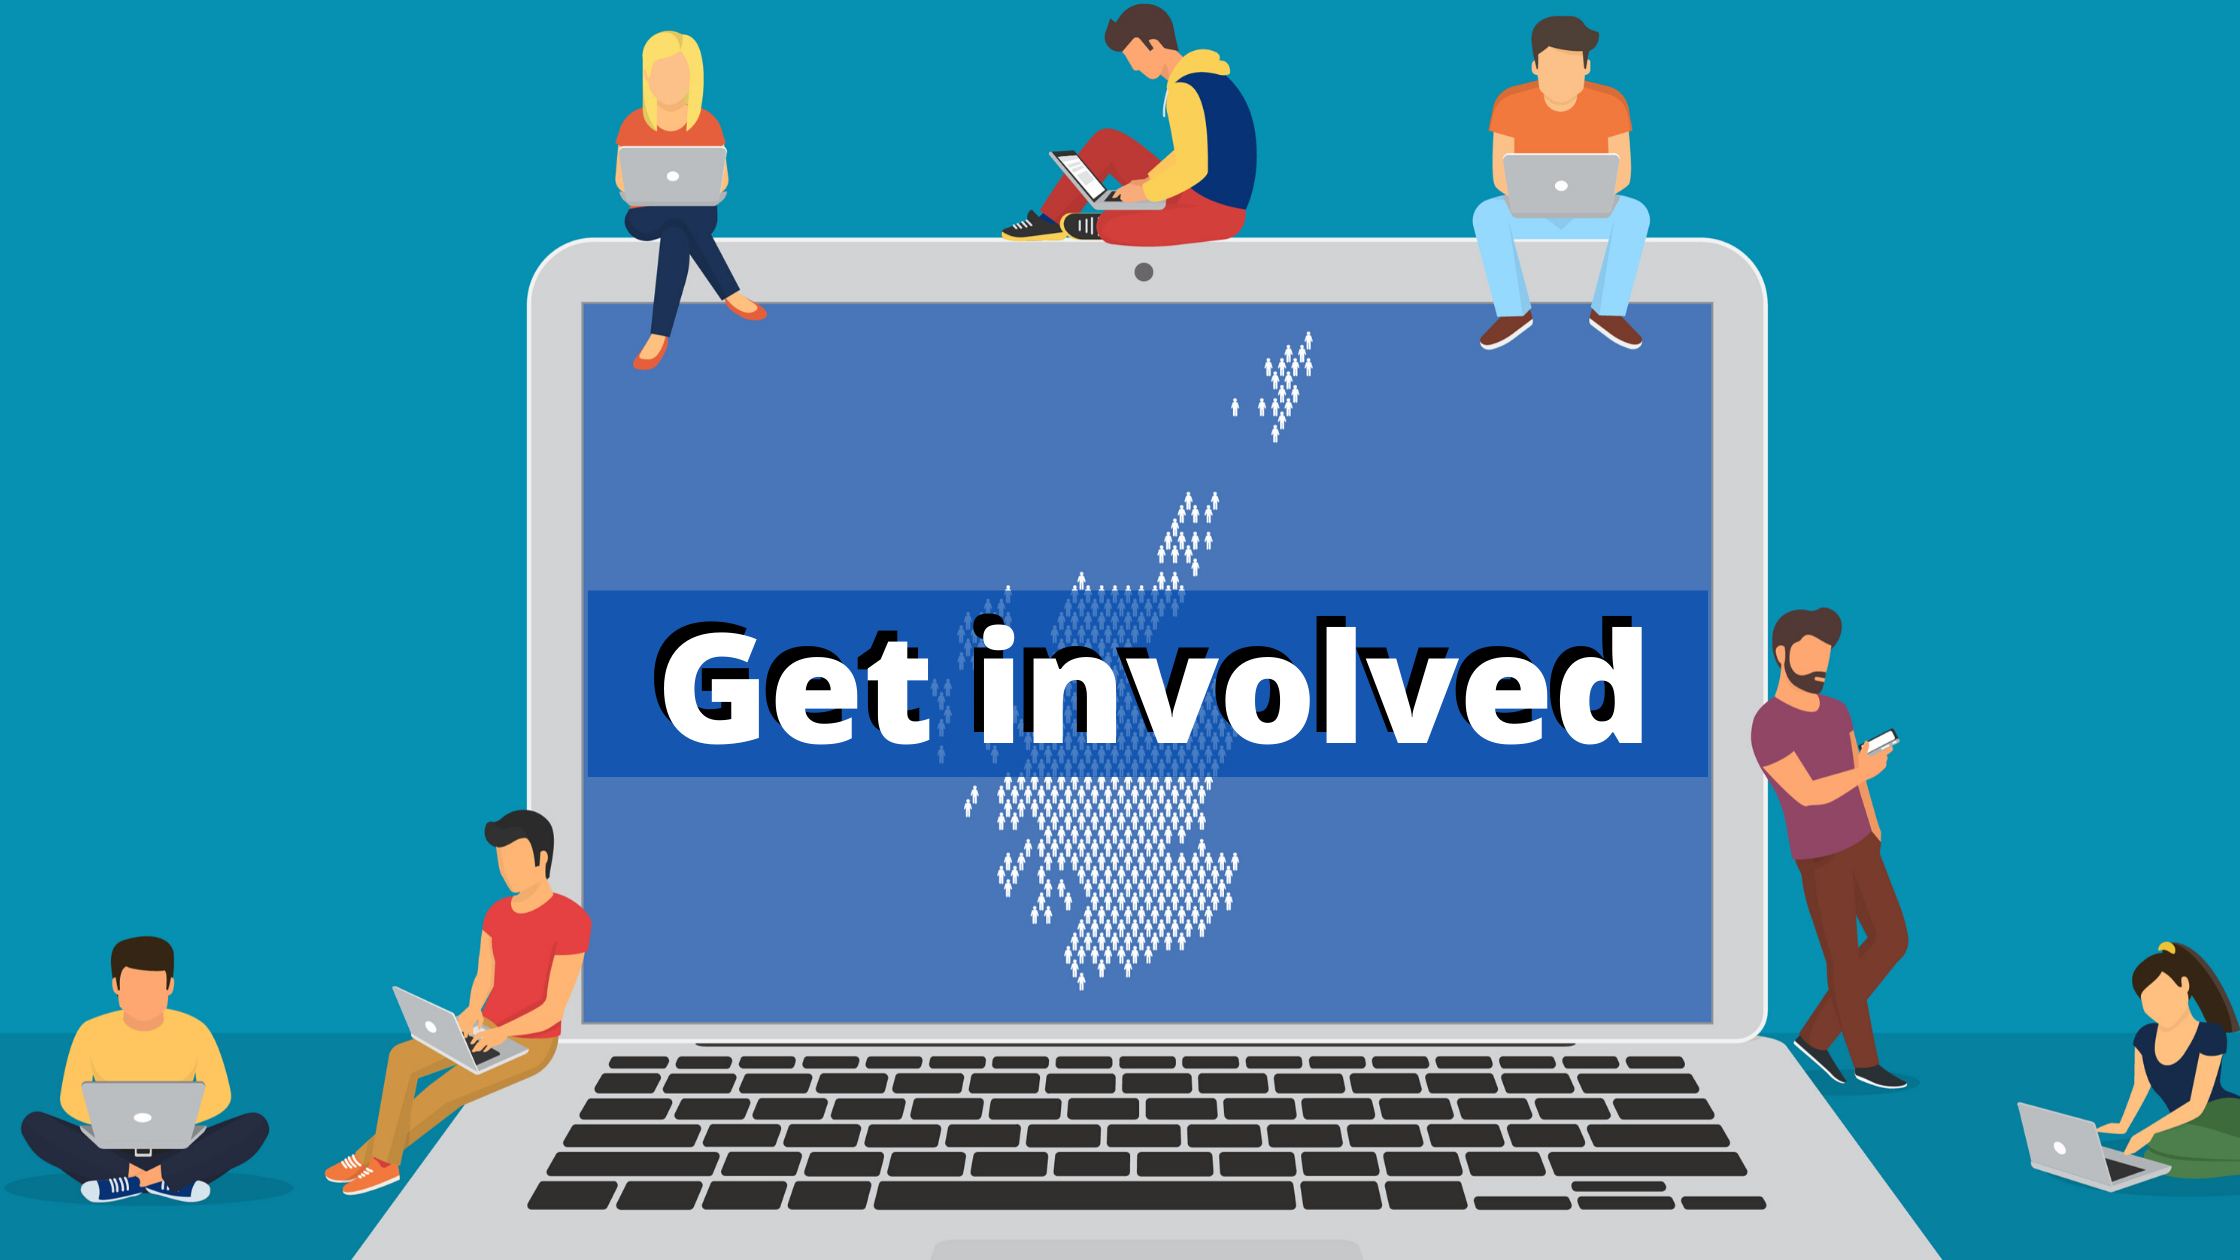 Graphic of illustrated poeple around a laptop, with the words 'Get involved' on screen